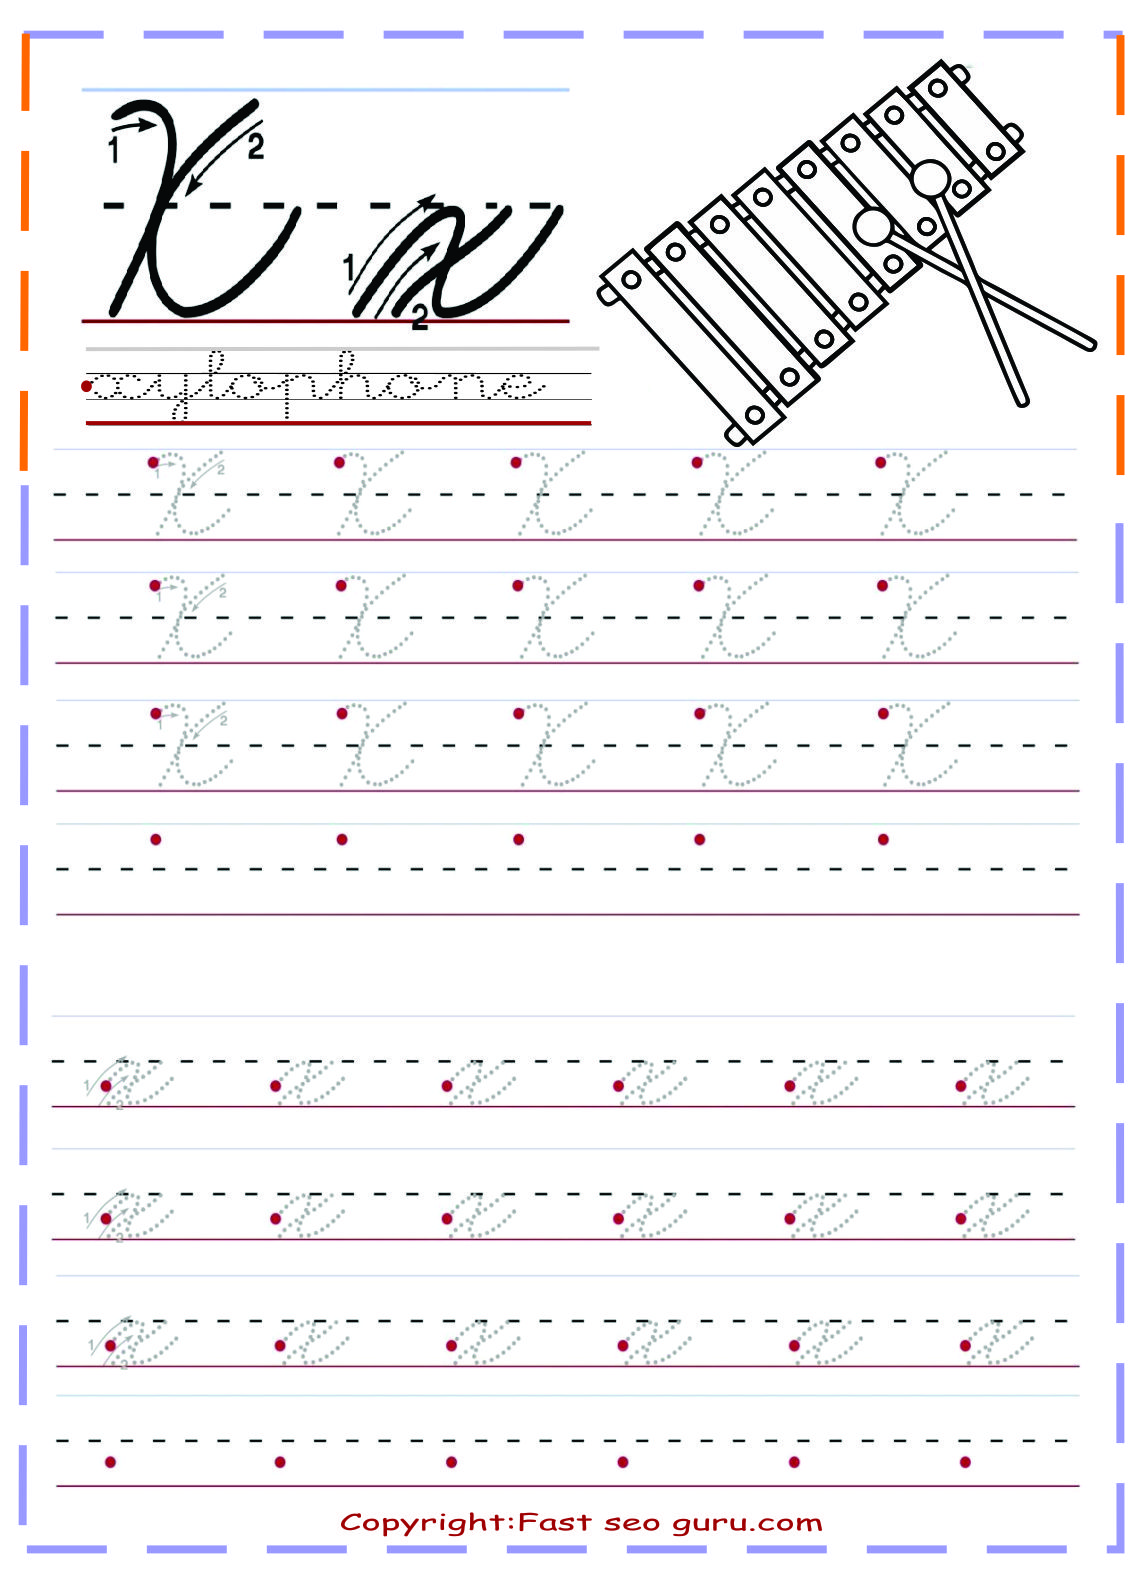 cursive handwriting tracing worksheets letter x for ...